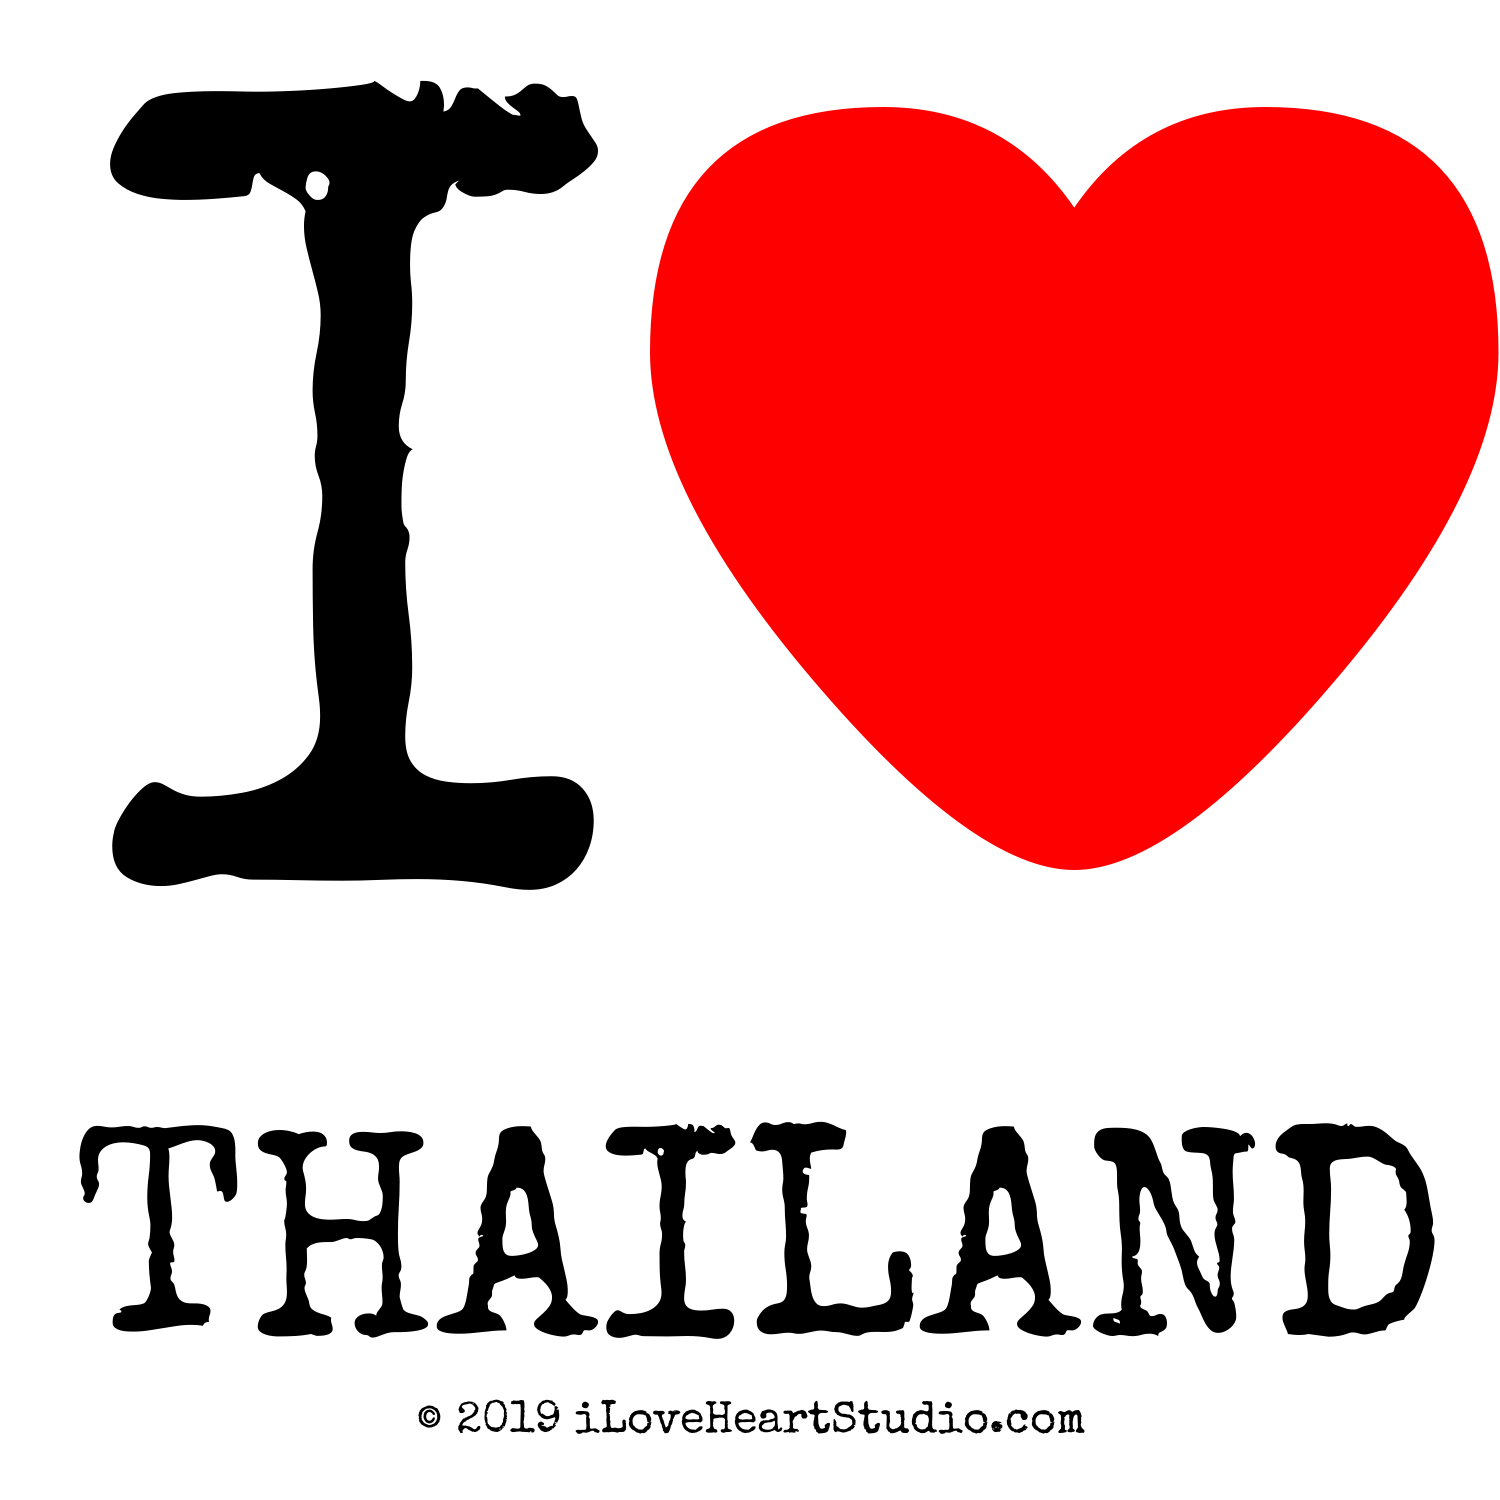 Http Www Iloveheartstudio Com Categories Go World Continents South East Asia Thailand